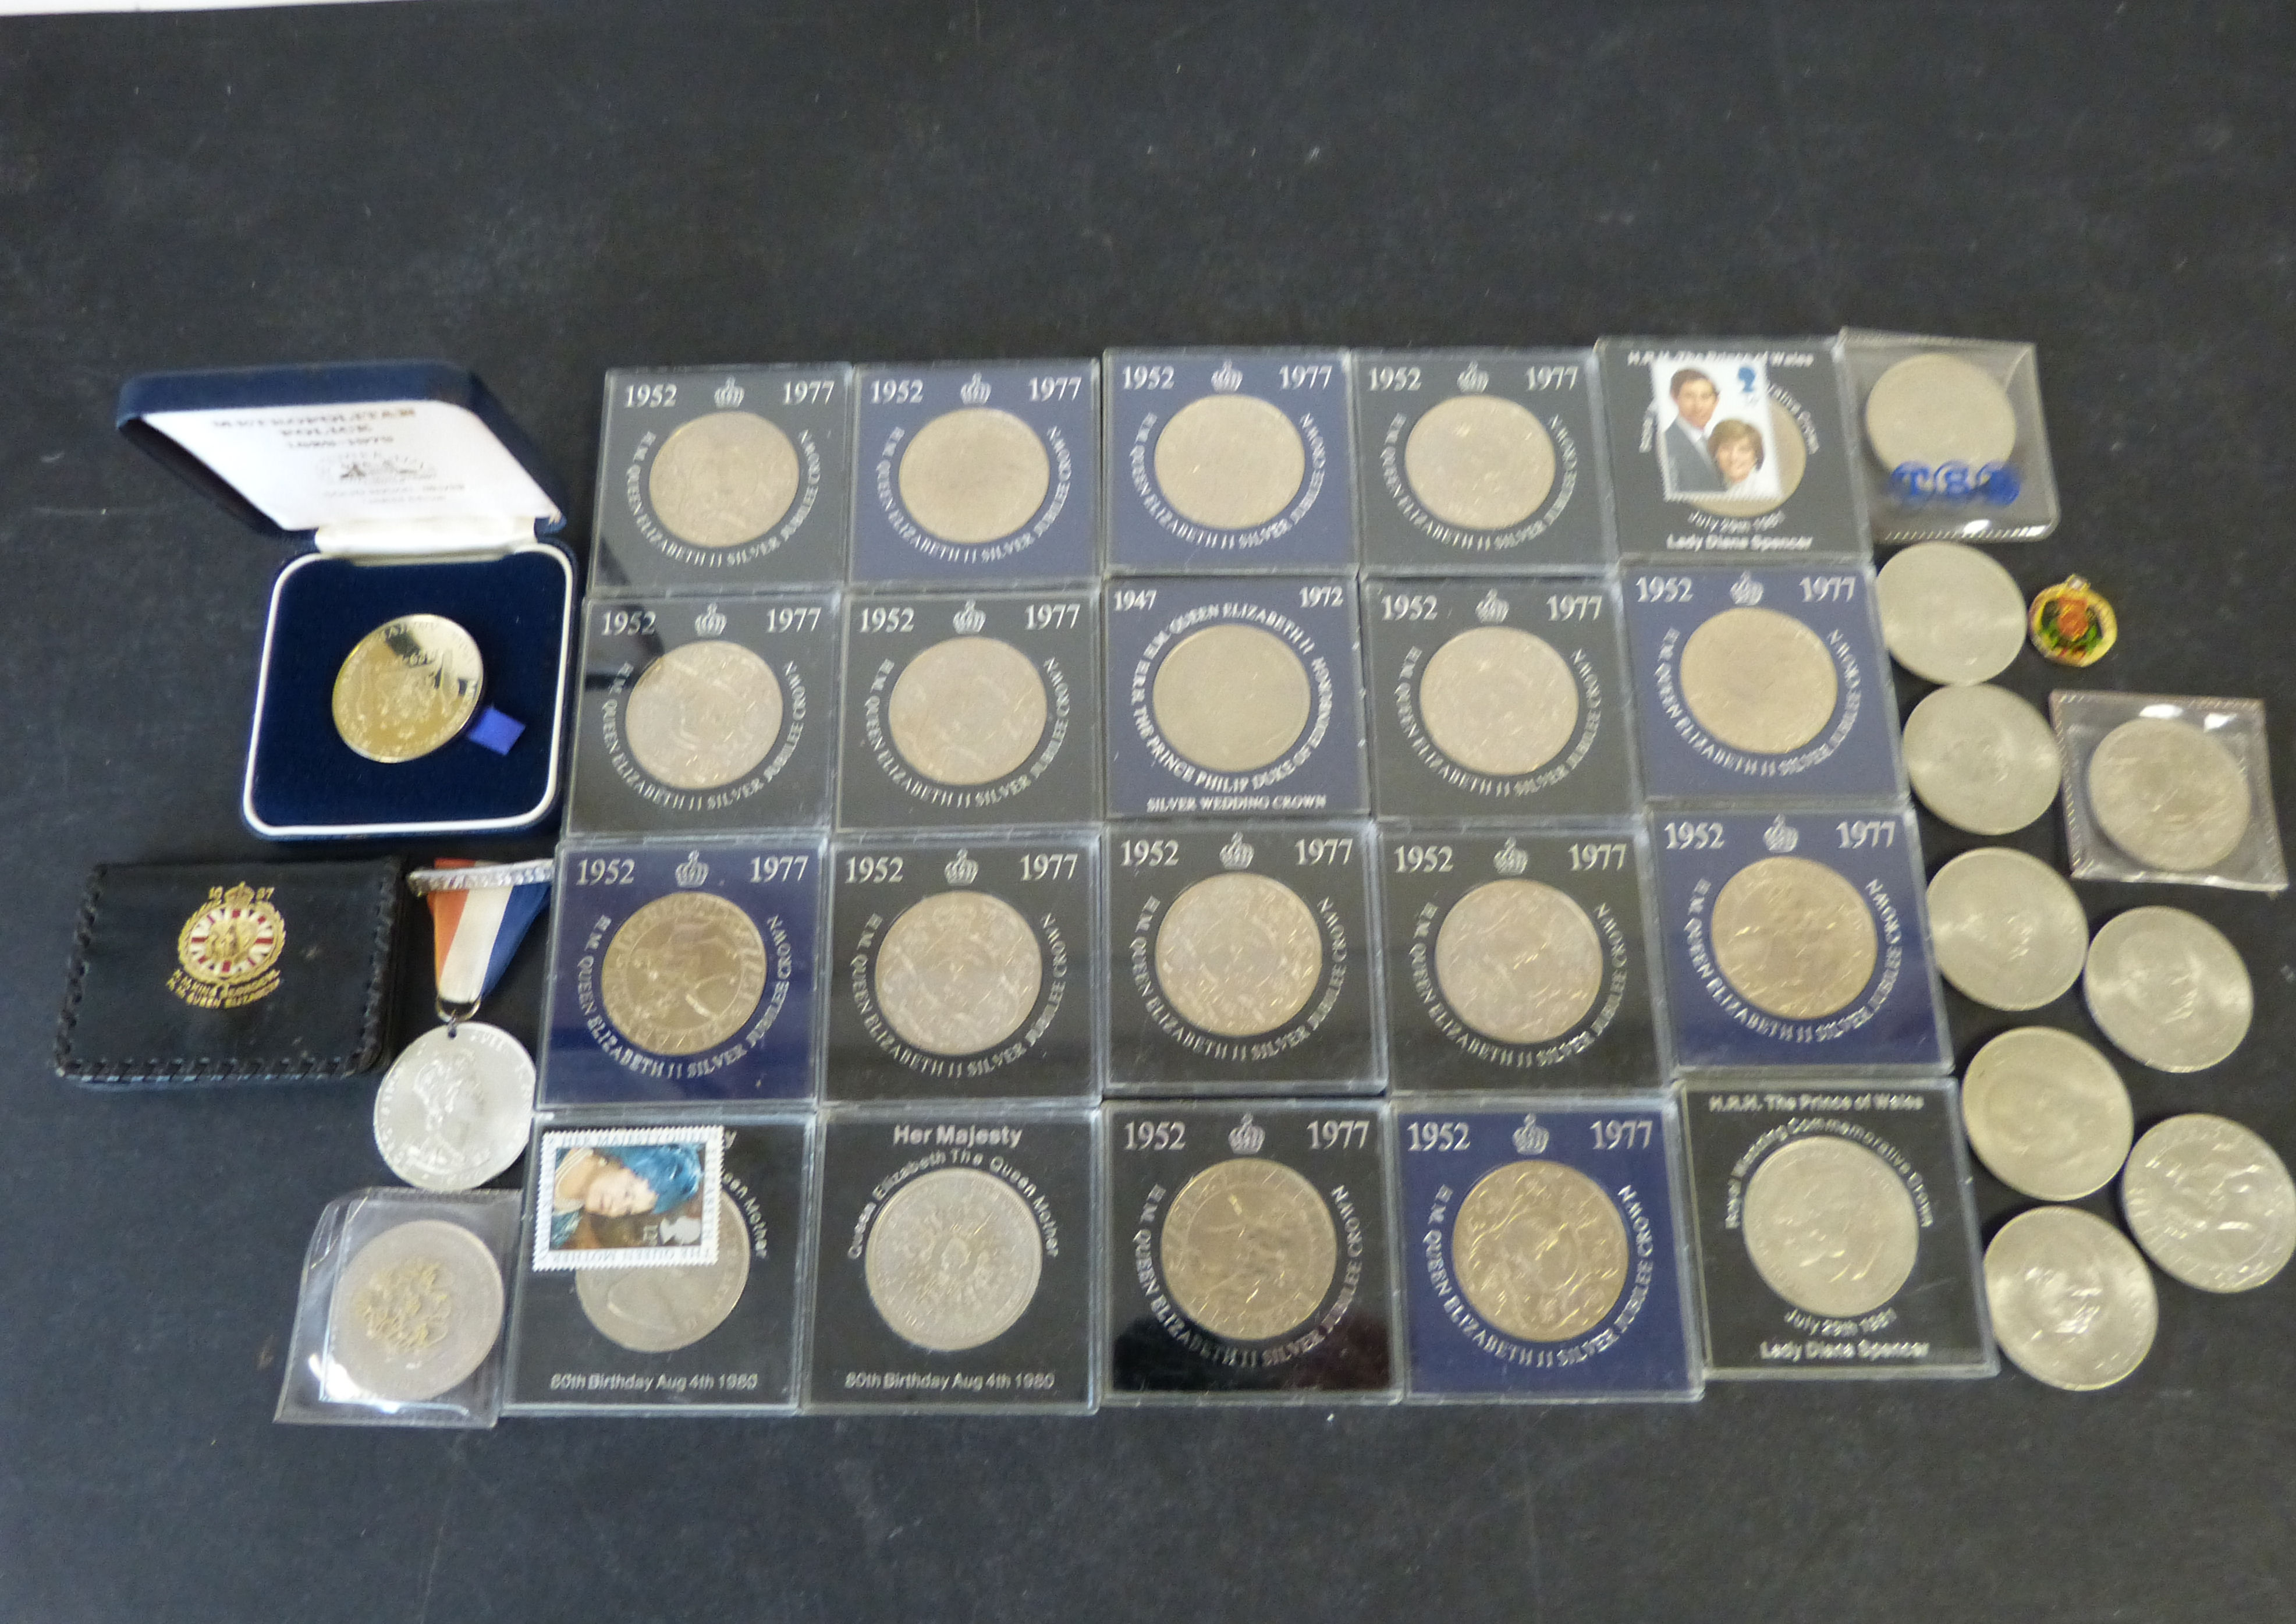 Queen Elizabeth II Coronation Medal and a quantity of various modern coins (Churchill, Crown`s etc)